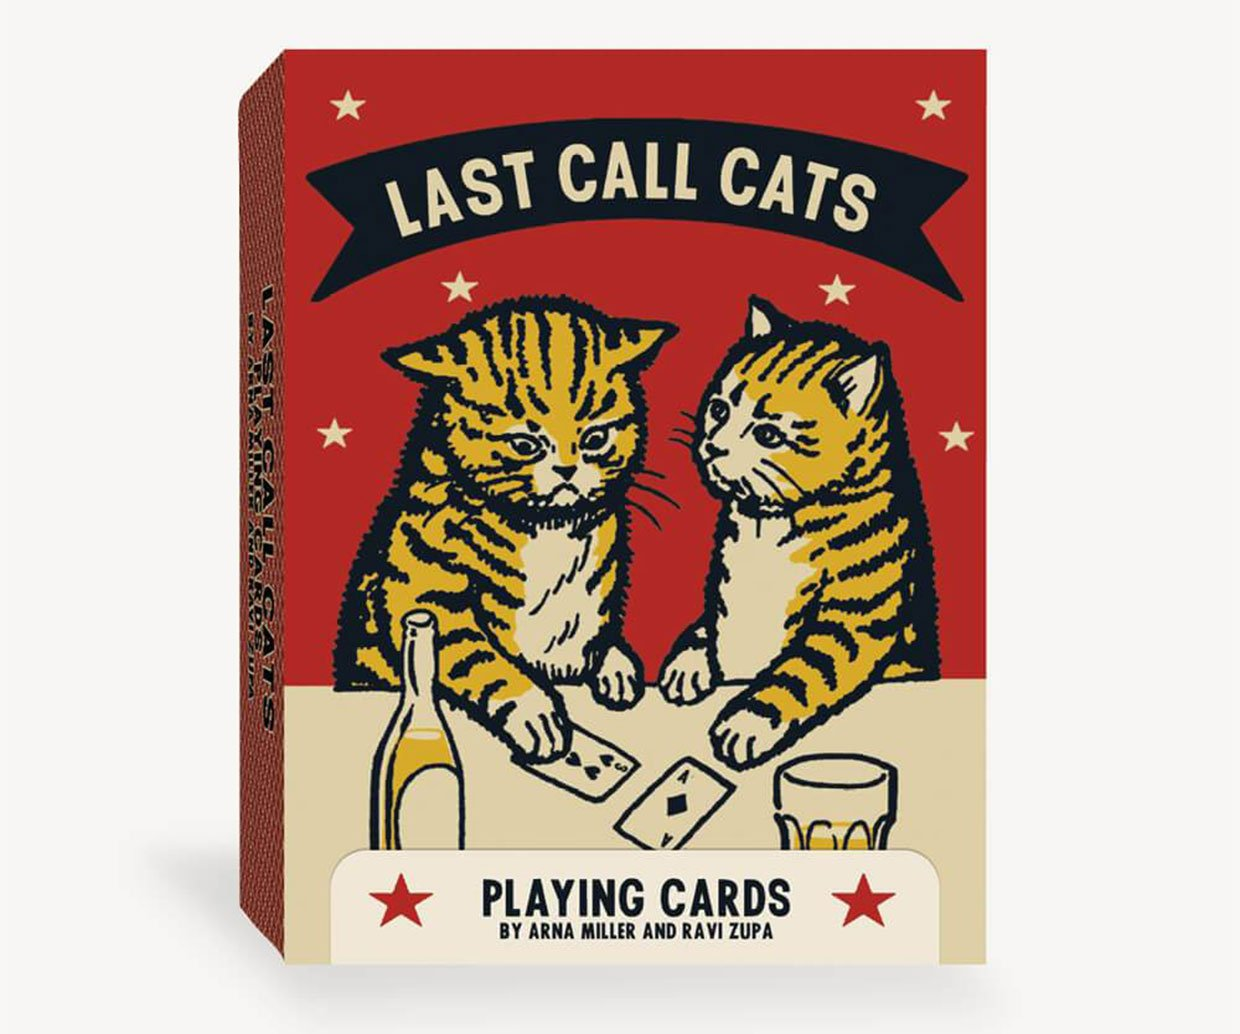 Last Call Cats Playing Cards